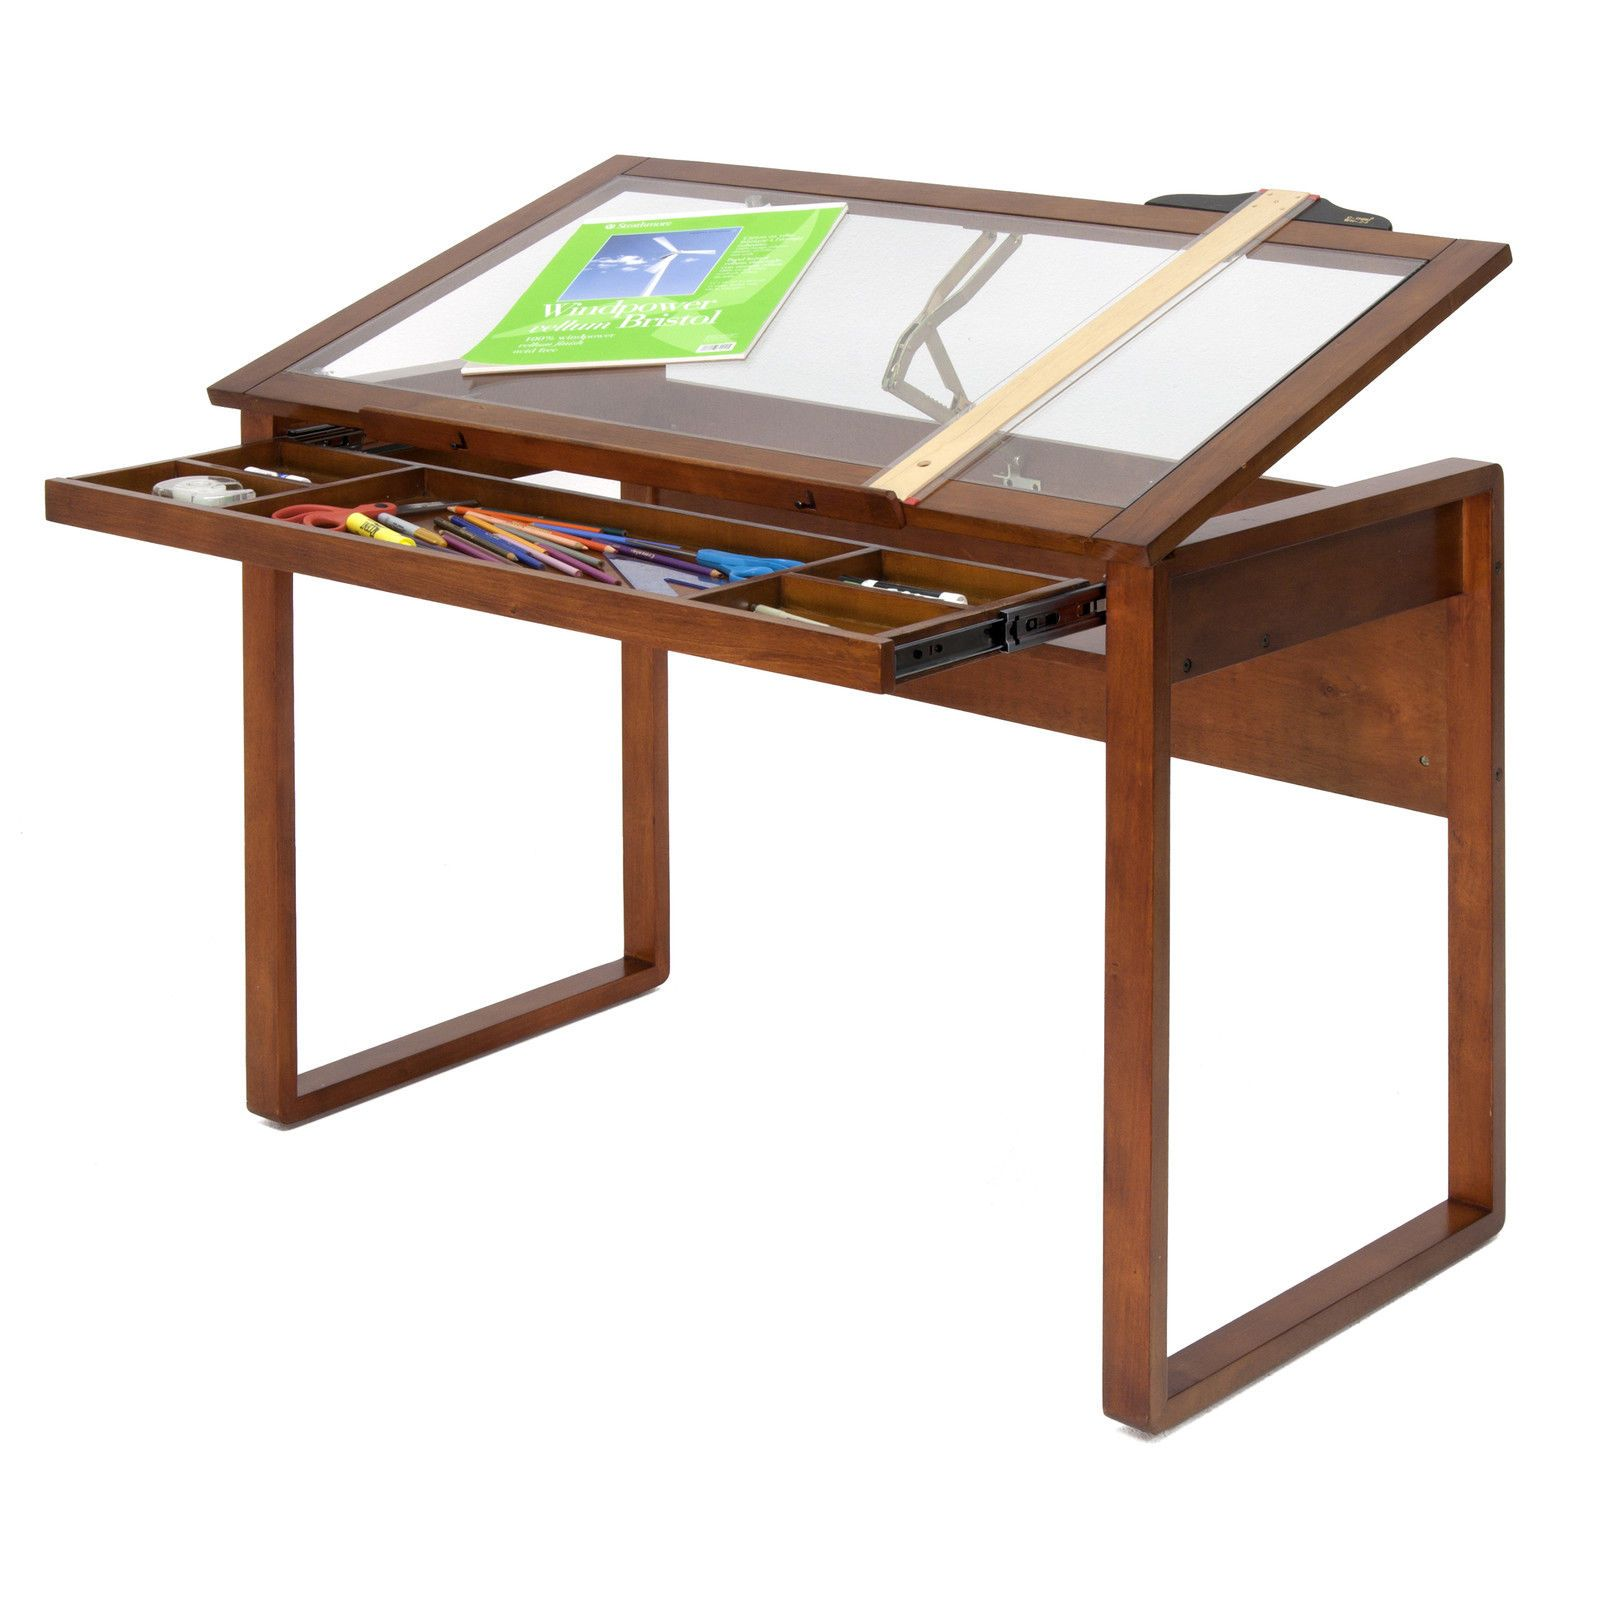 Muebles Ponderosa - Studio Designs Ponderosa Glass Topped Solid Wood Drafting Table [mjhdah]https://www.vm-images.net/sys/resource.ashx?guid=afb79df3f7e1489996d1637bf222706b